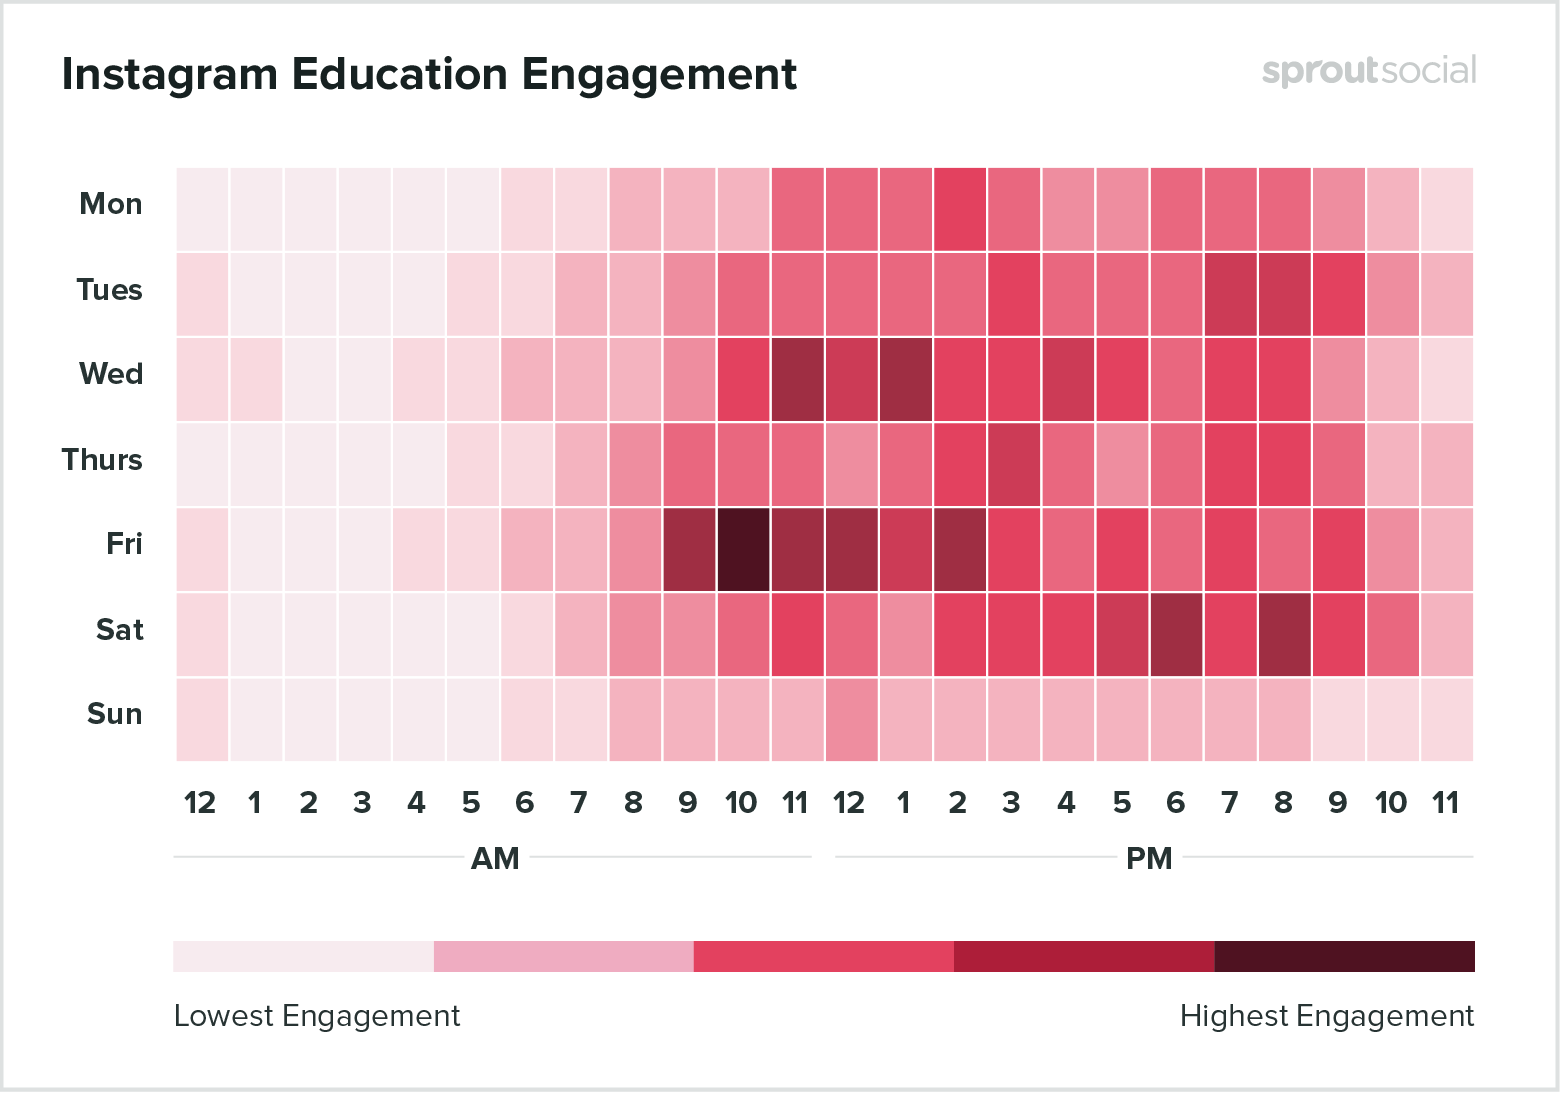 Best times to post on Instagram for education 2020